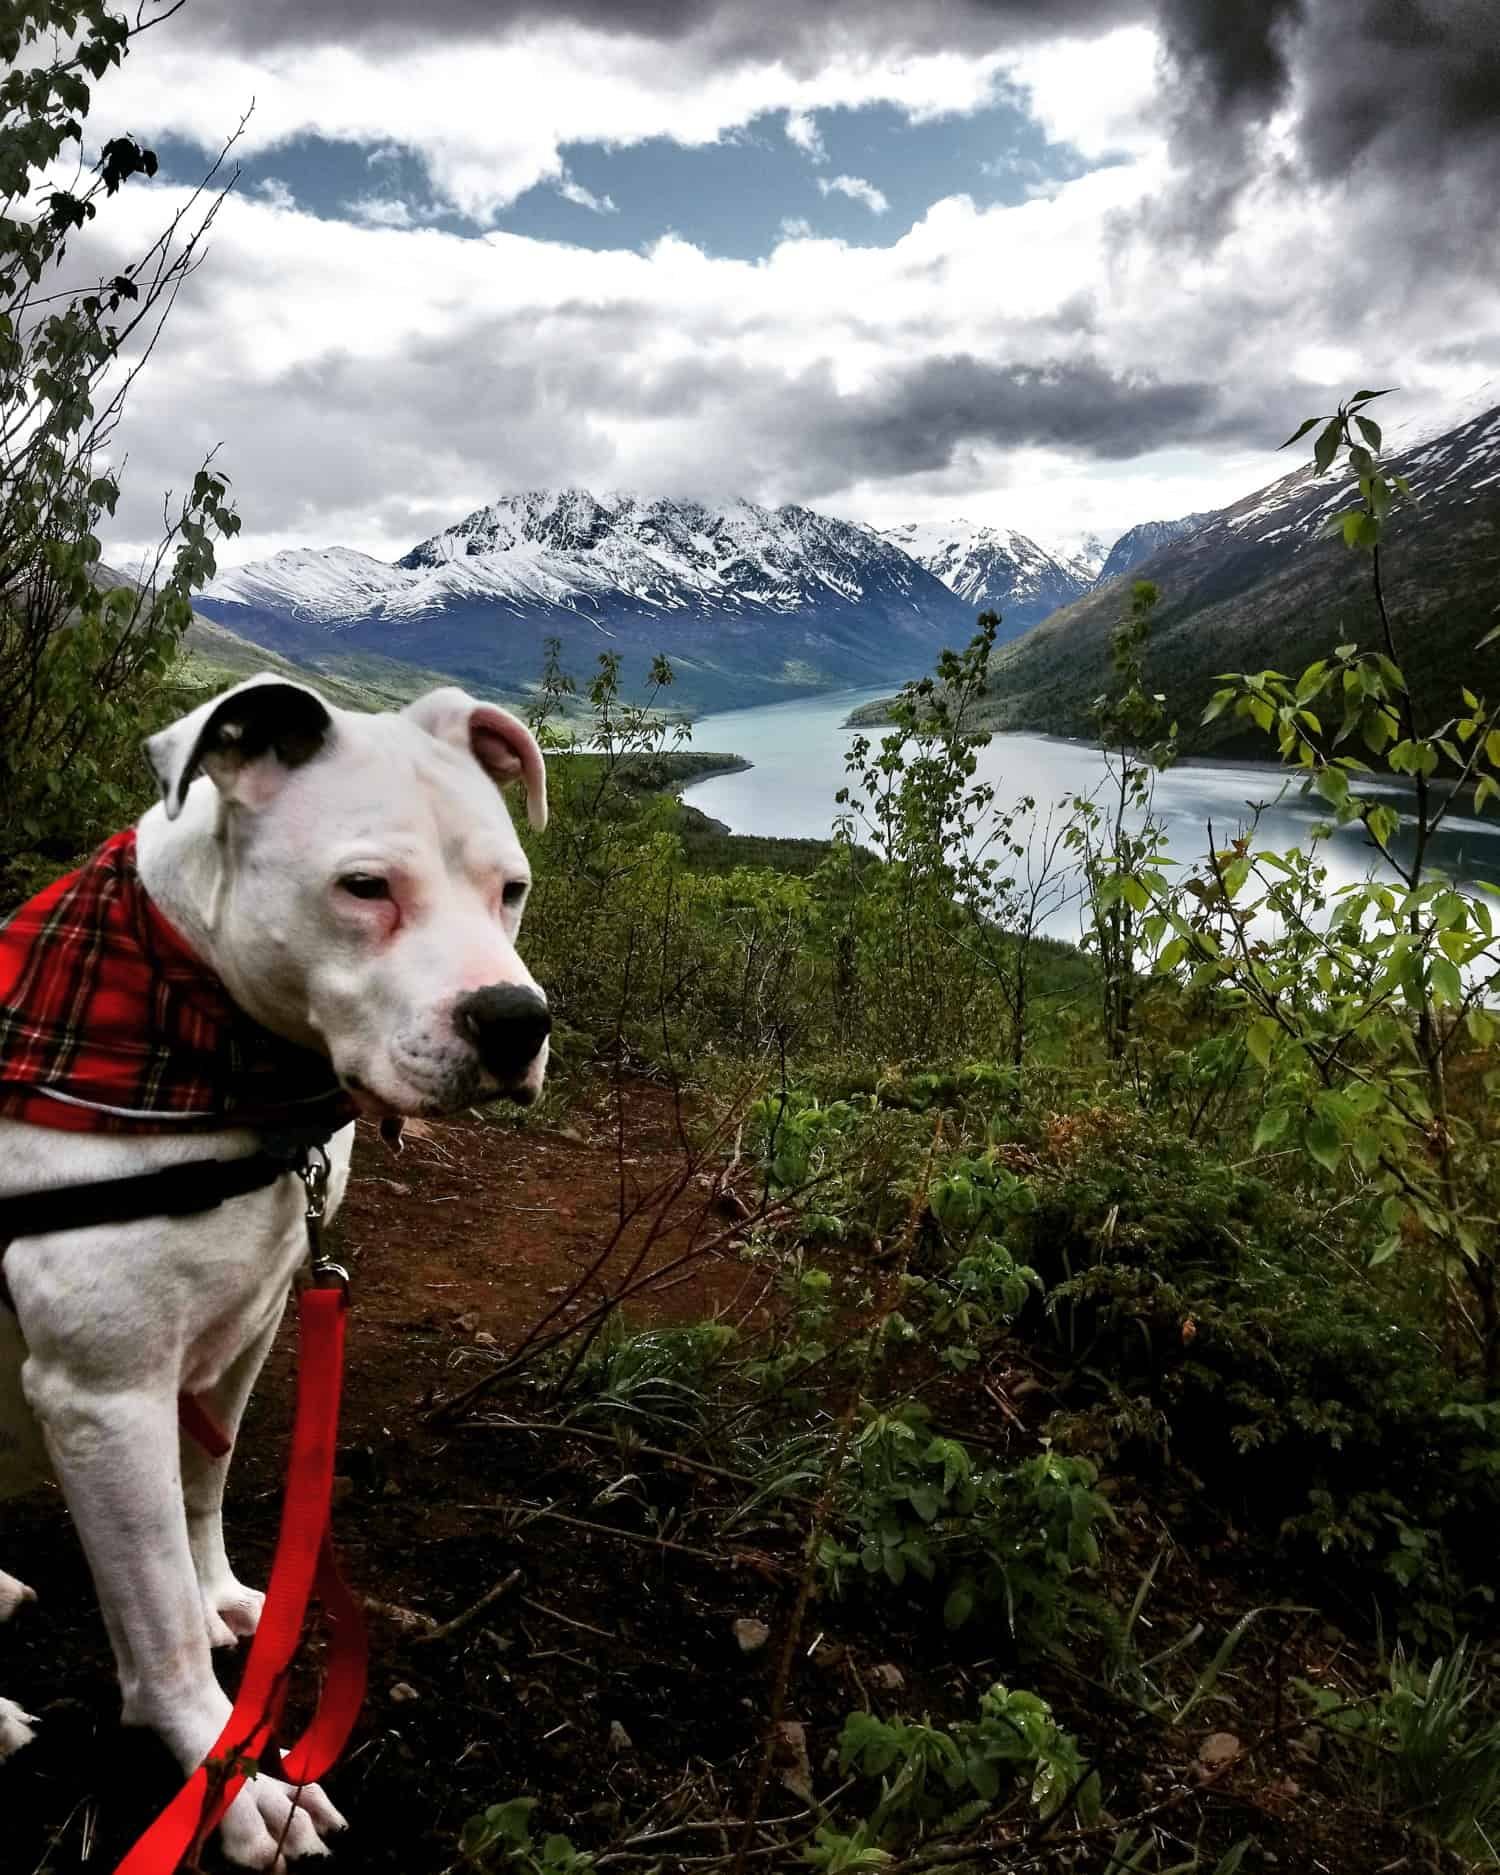 White dog sitting on a pet friendly trail with a snow covered mountain in the background